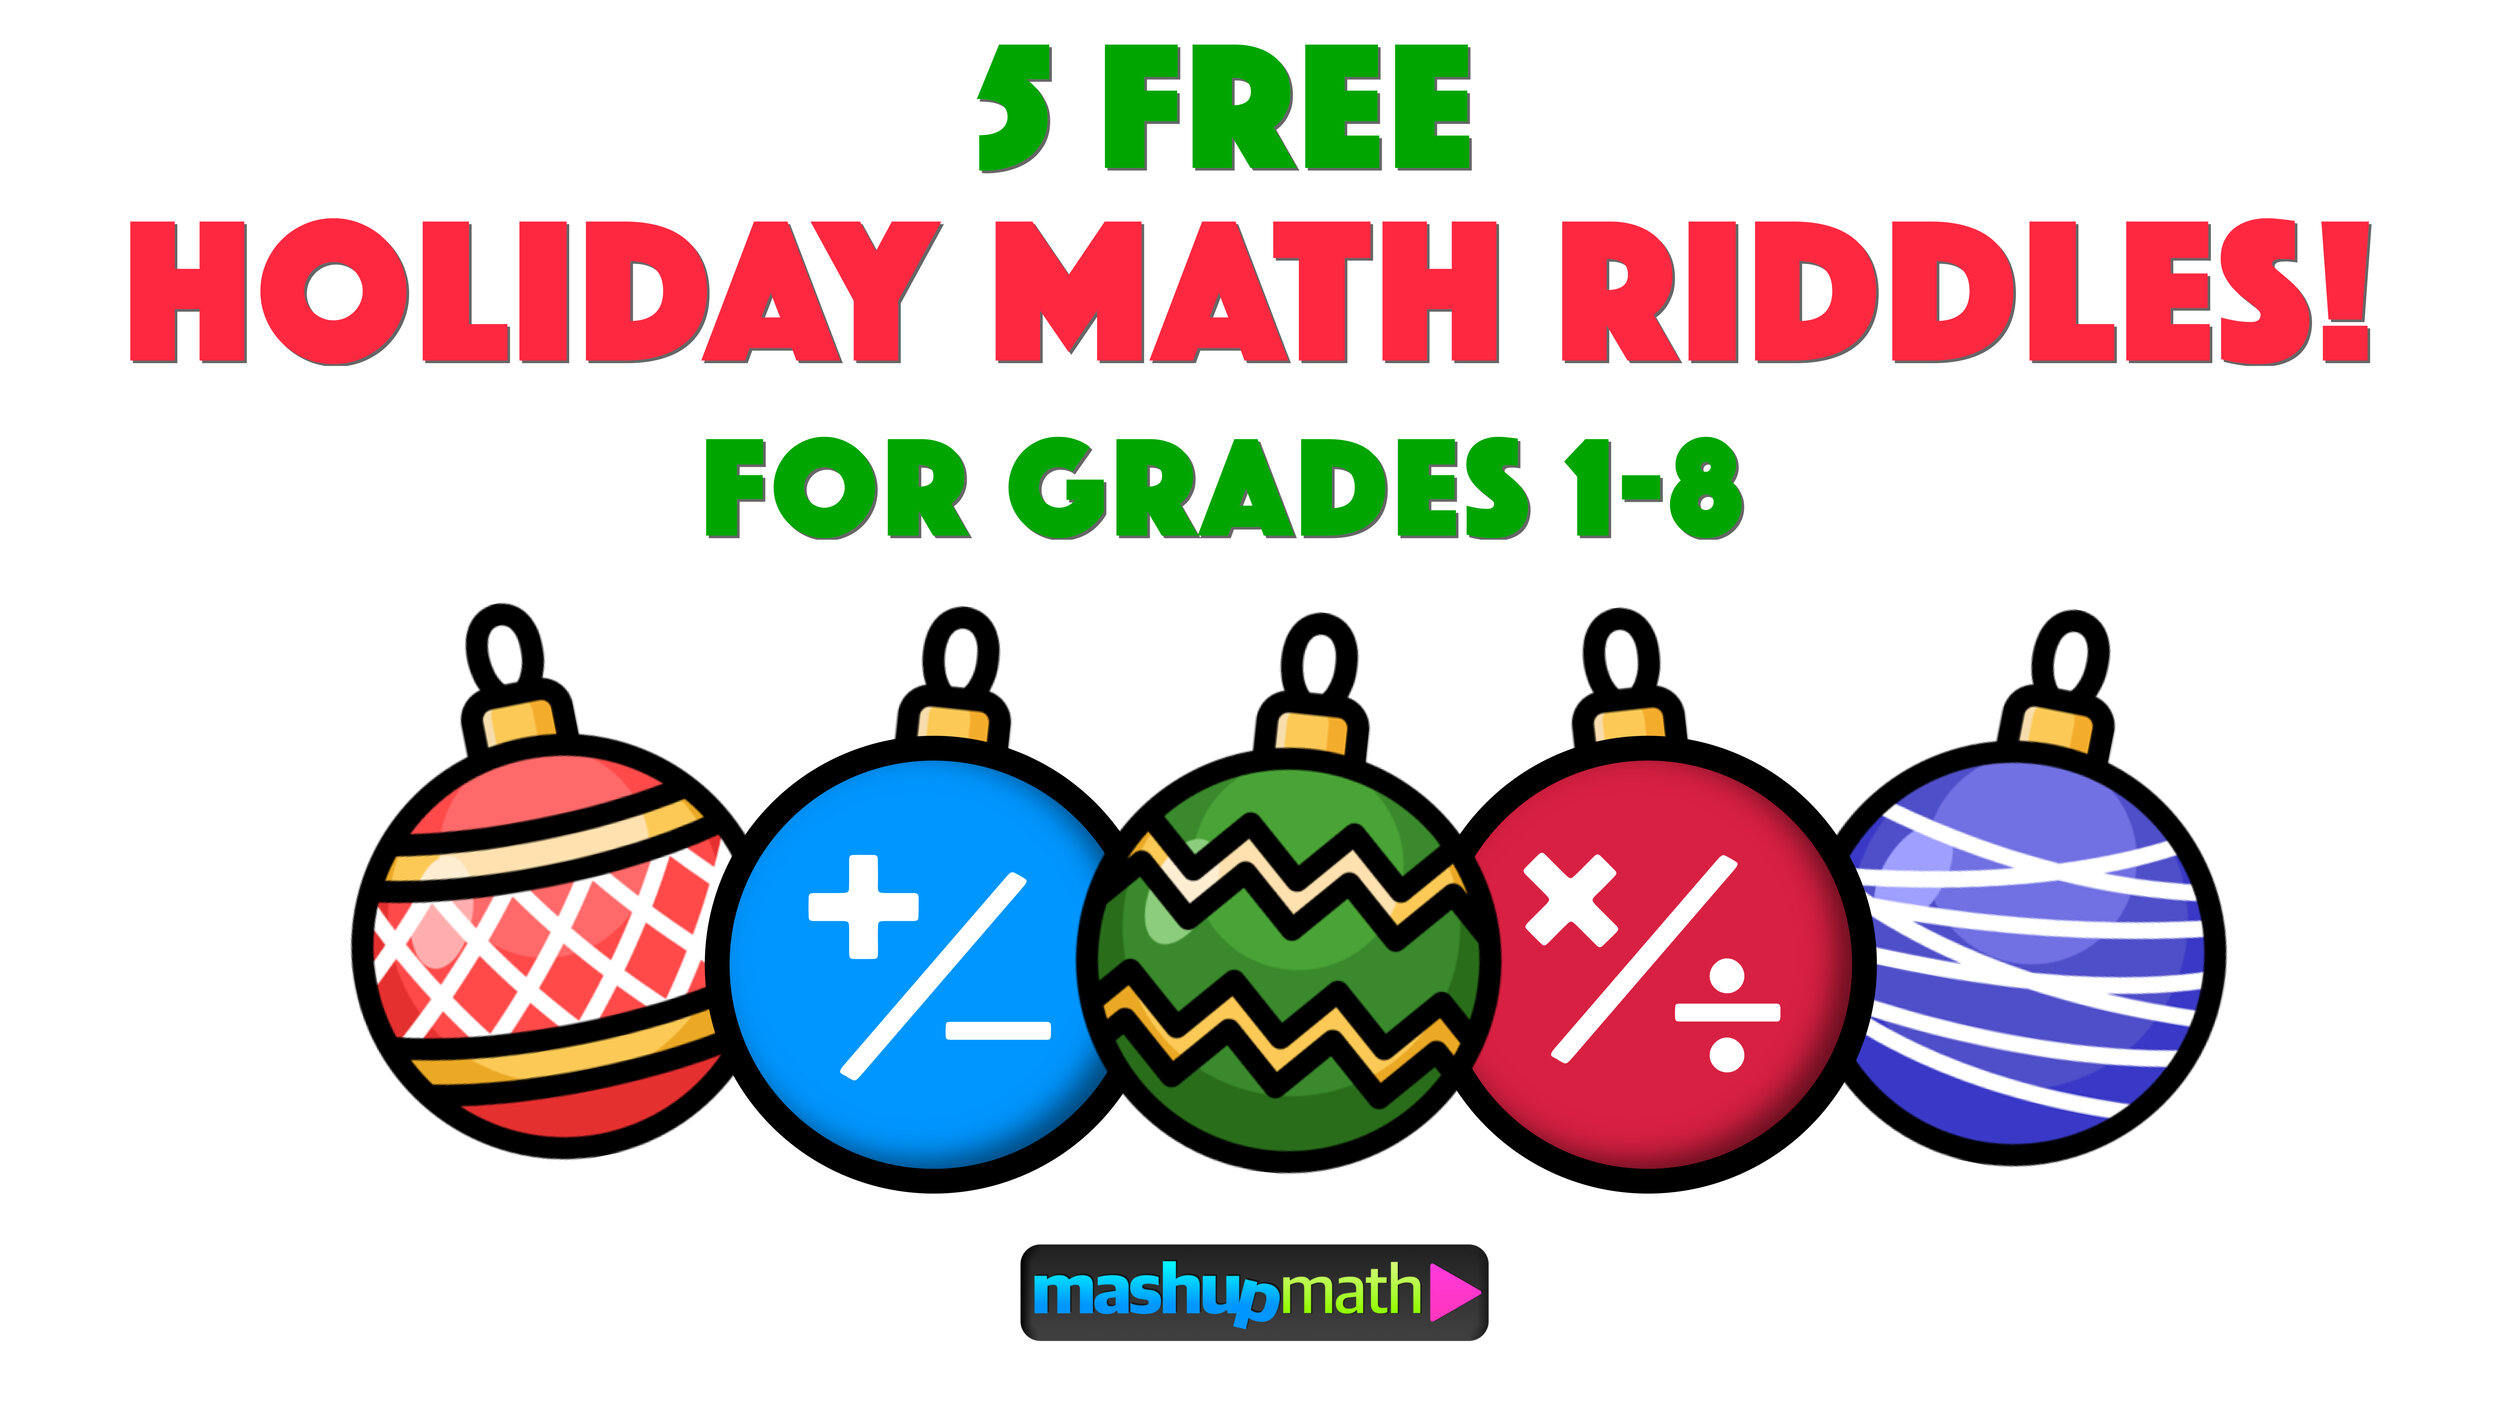 hight resolution of 5 Fun Christmas Math Riddles and Brain Teasers for Grades 1-8 — Mashup Math